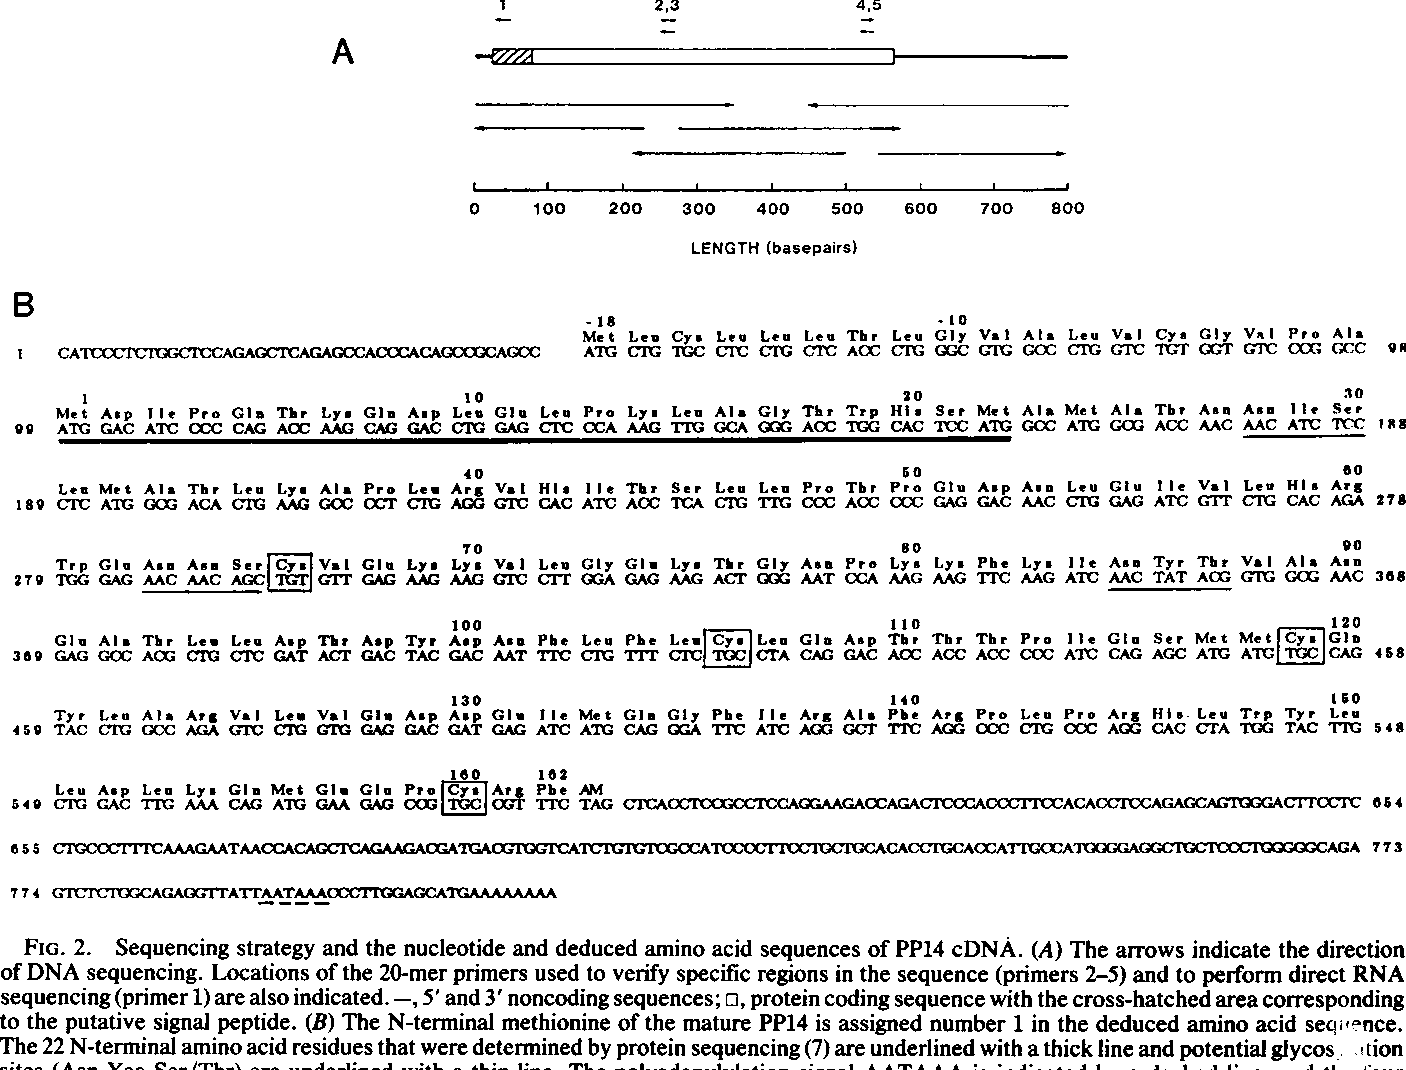 FIG. 2. Sequencing strategy and the nucleotide and deduced amino acid sequences of PP14 cDNA. (A) The arrows indicate the direction ofDNA sequencing. Locations of the 20-mer primers used to verify specific regions in the sequence (primers 2-5) and to perform direct RNA sequencing (primer 1) are also indicated. -, 5' and 3' noncoding sequences; o, protein coding sequence with the cross-hatched area corresponding to the putative signal peptide. (B) The N-terminal methionine of the mature PP14 is assigned number 1 in the deduced amino acid sequence. The 22 N-terminal amino acid residues that were determined by protein sequencing (7) are underlined with a thick line and potential glycos tion sites (Asn-Xaa-Ser/Thr) are underlined with a thin line. The polyadenylylation signal AATAAA is indicated by a dashed line, and th four cysteinyl residues are boxed. Each nucleotide on both strands ofPP14 cDNA was sequenced at least twice; the first 21 nucleotides were obrtained from direct RNA sequencing.